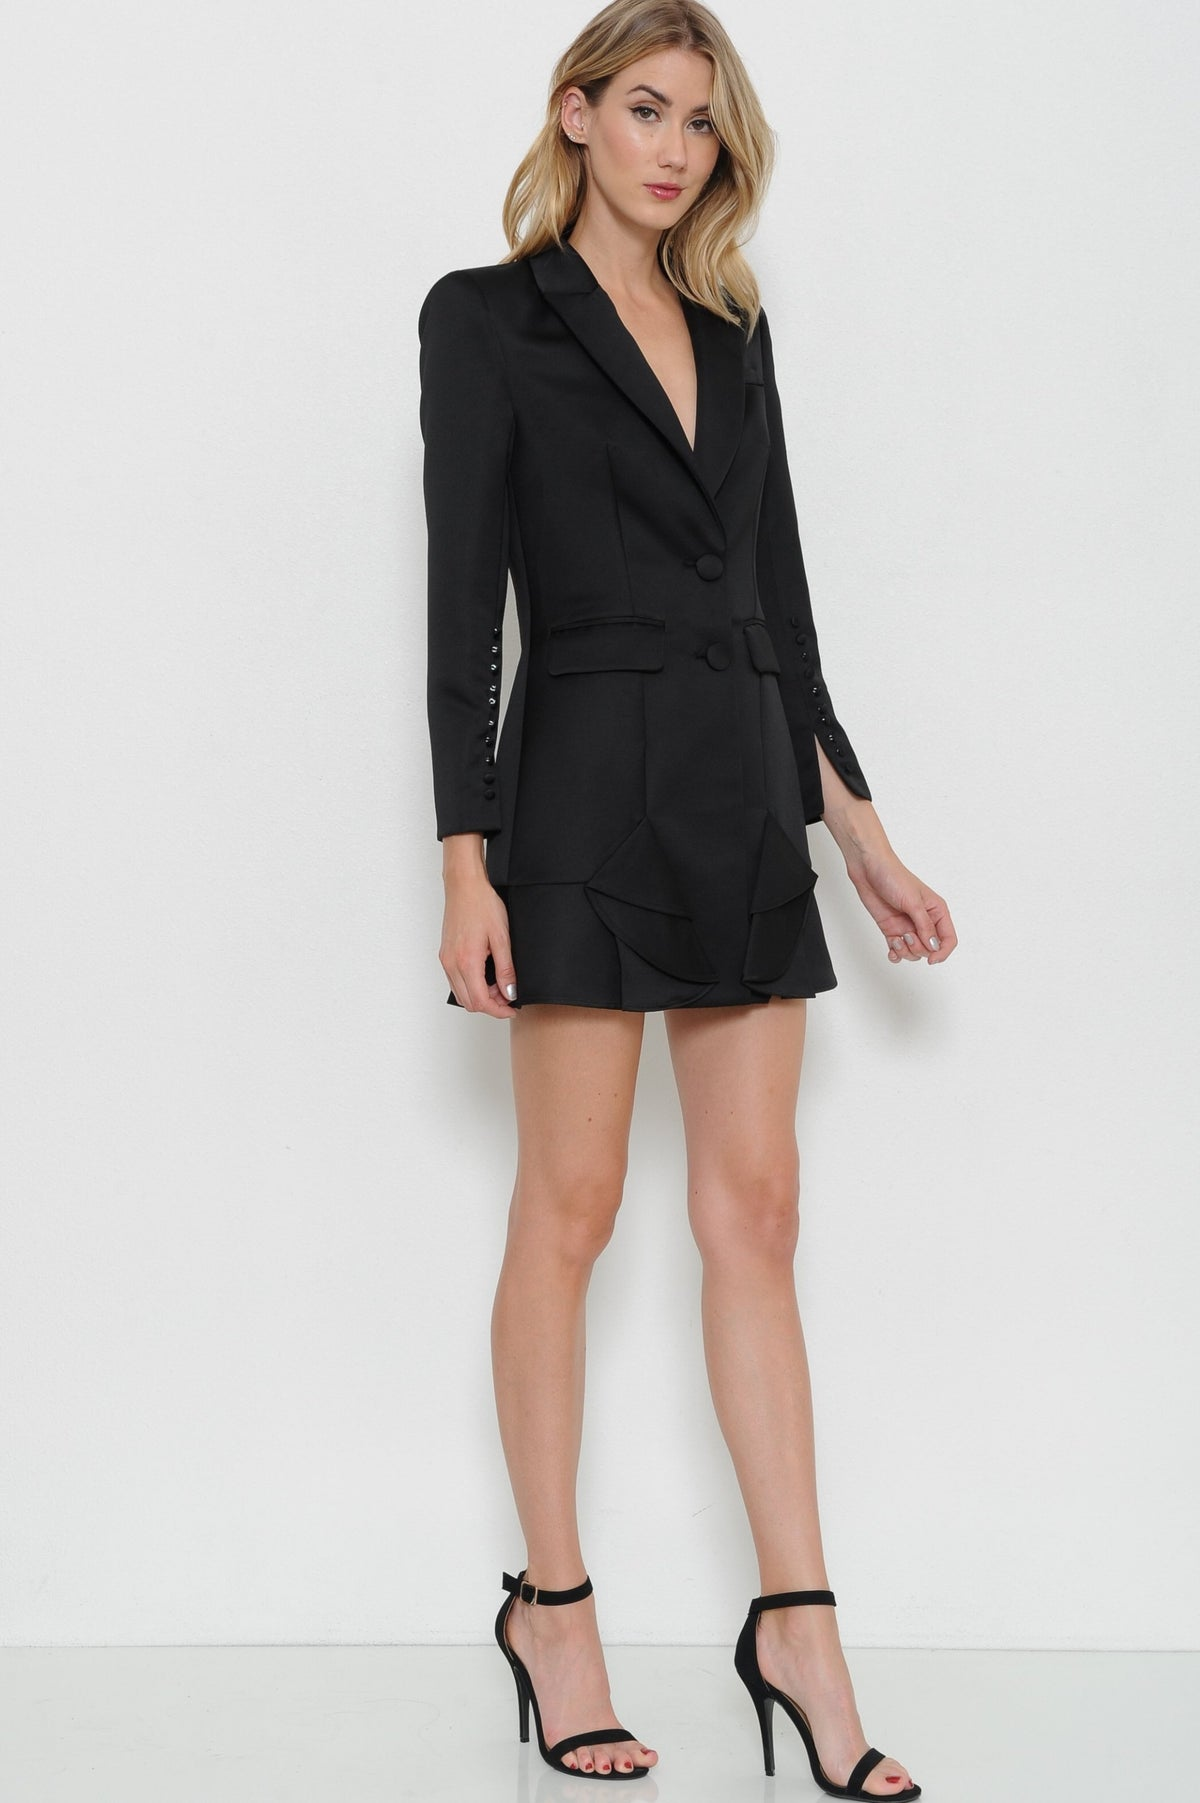 If I Were A Boy Solid Blazer Dress - Geegeebae